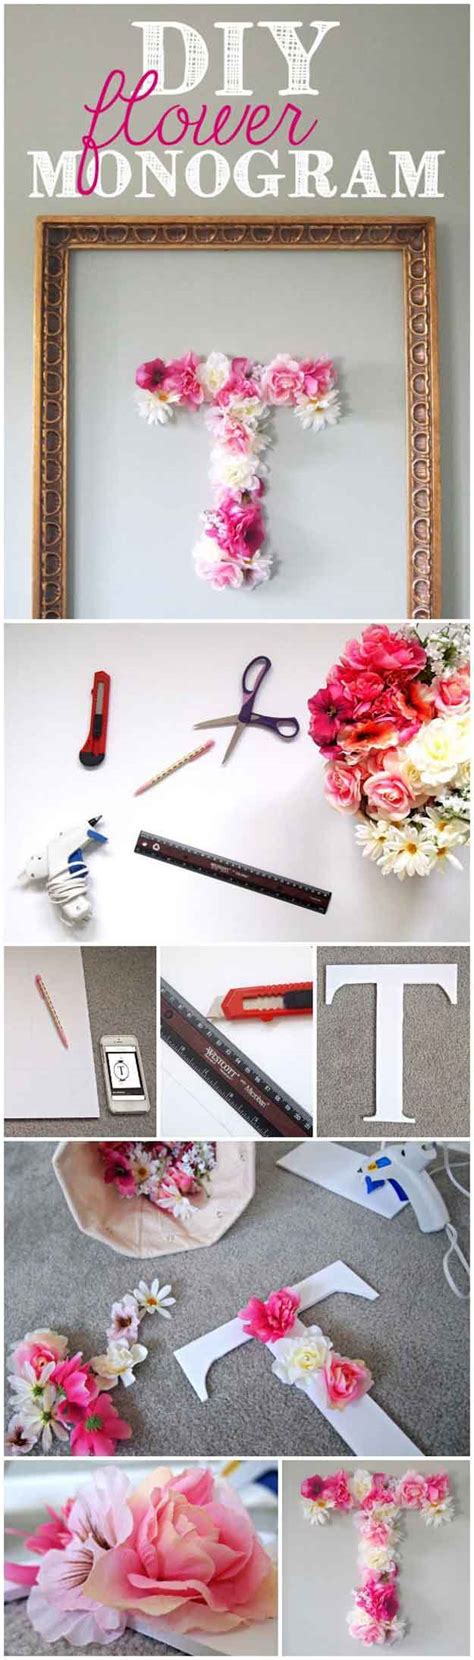 Diy Projects For Teens Bedroom Diy Ready Diy Decoration For Bedroom